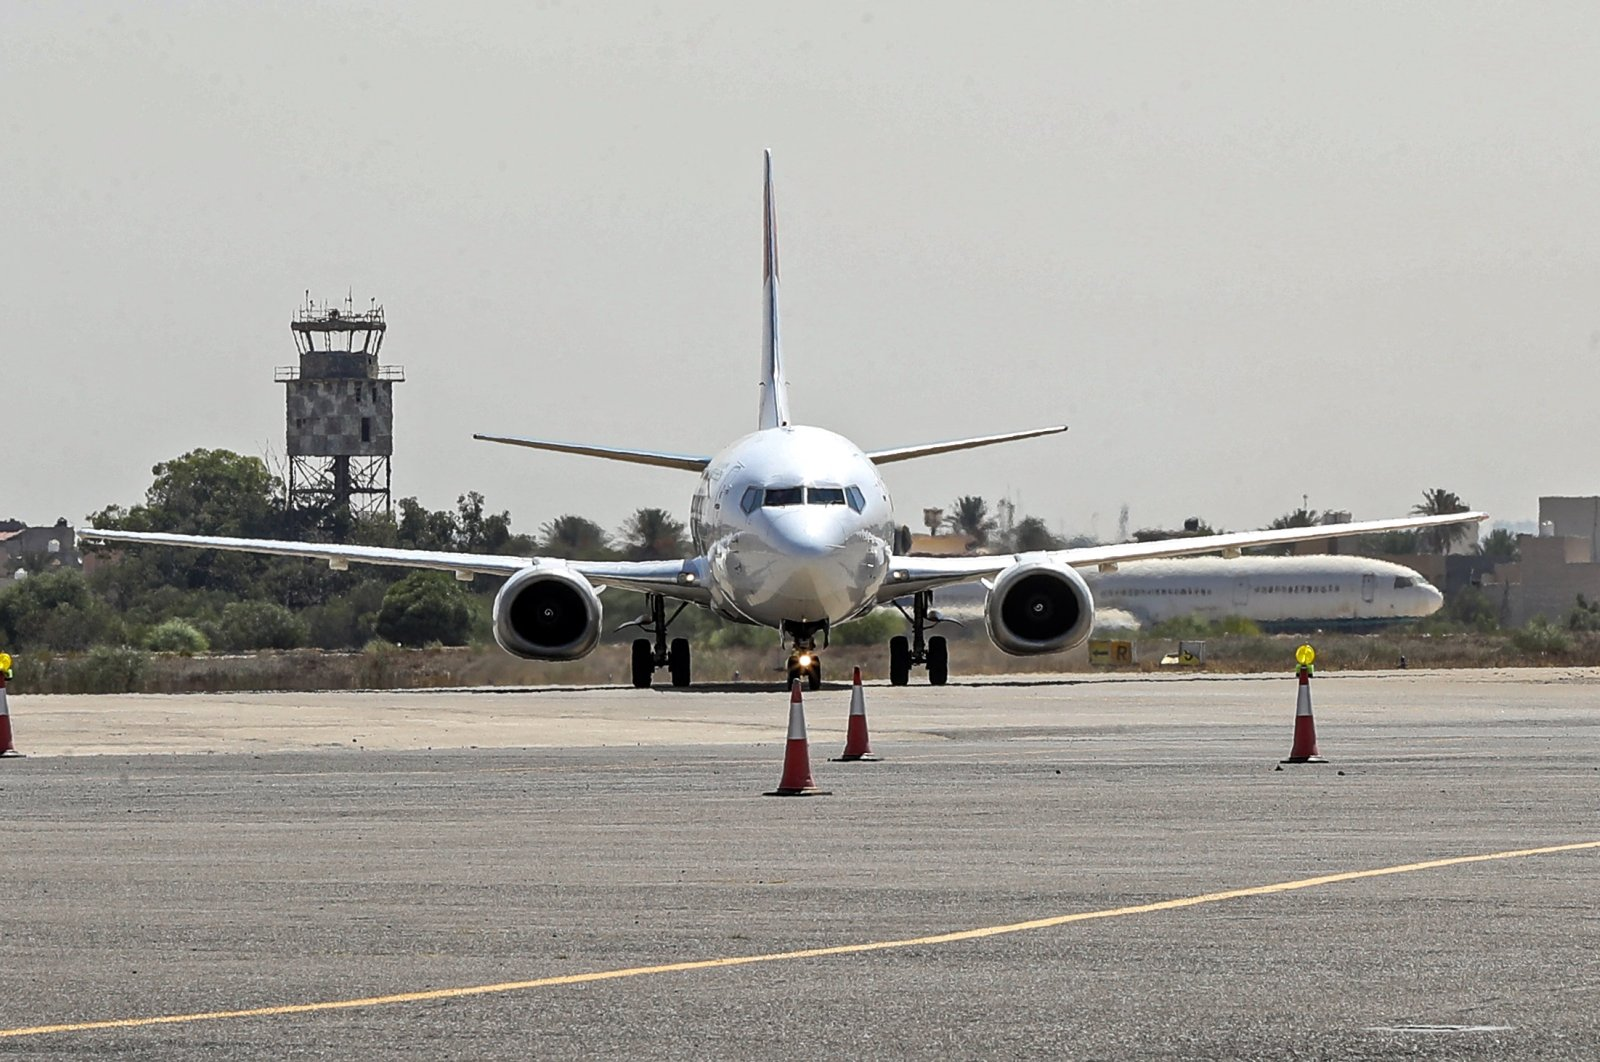 A Boeing 737 aircraft on the tarmac at Libya's Mitiga International Airport, east of the capital Tripoli, Sept. 20, 2021. (AFP Photo)